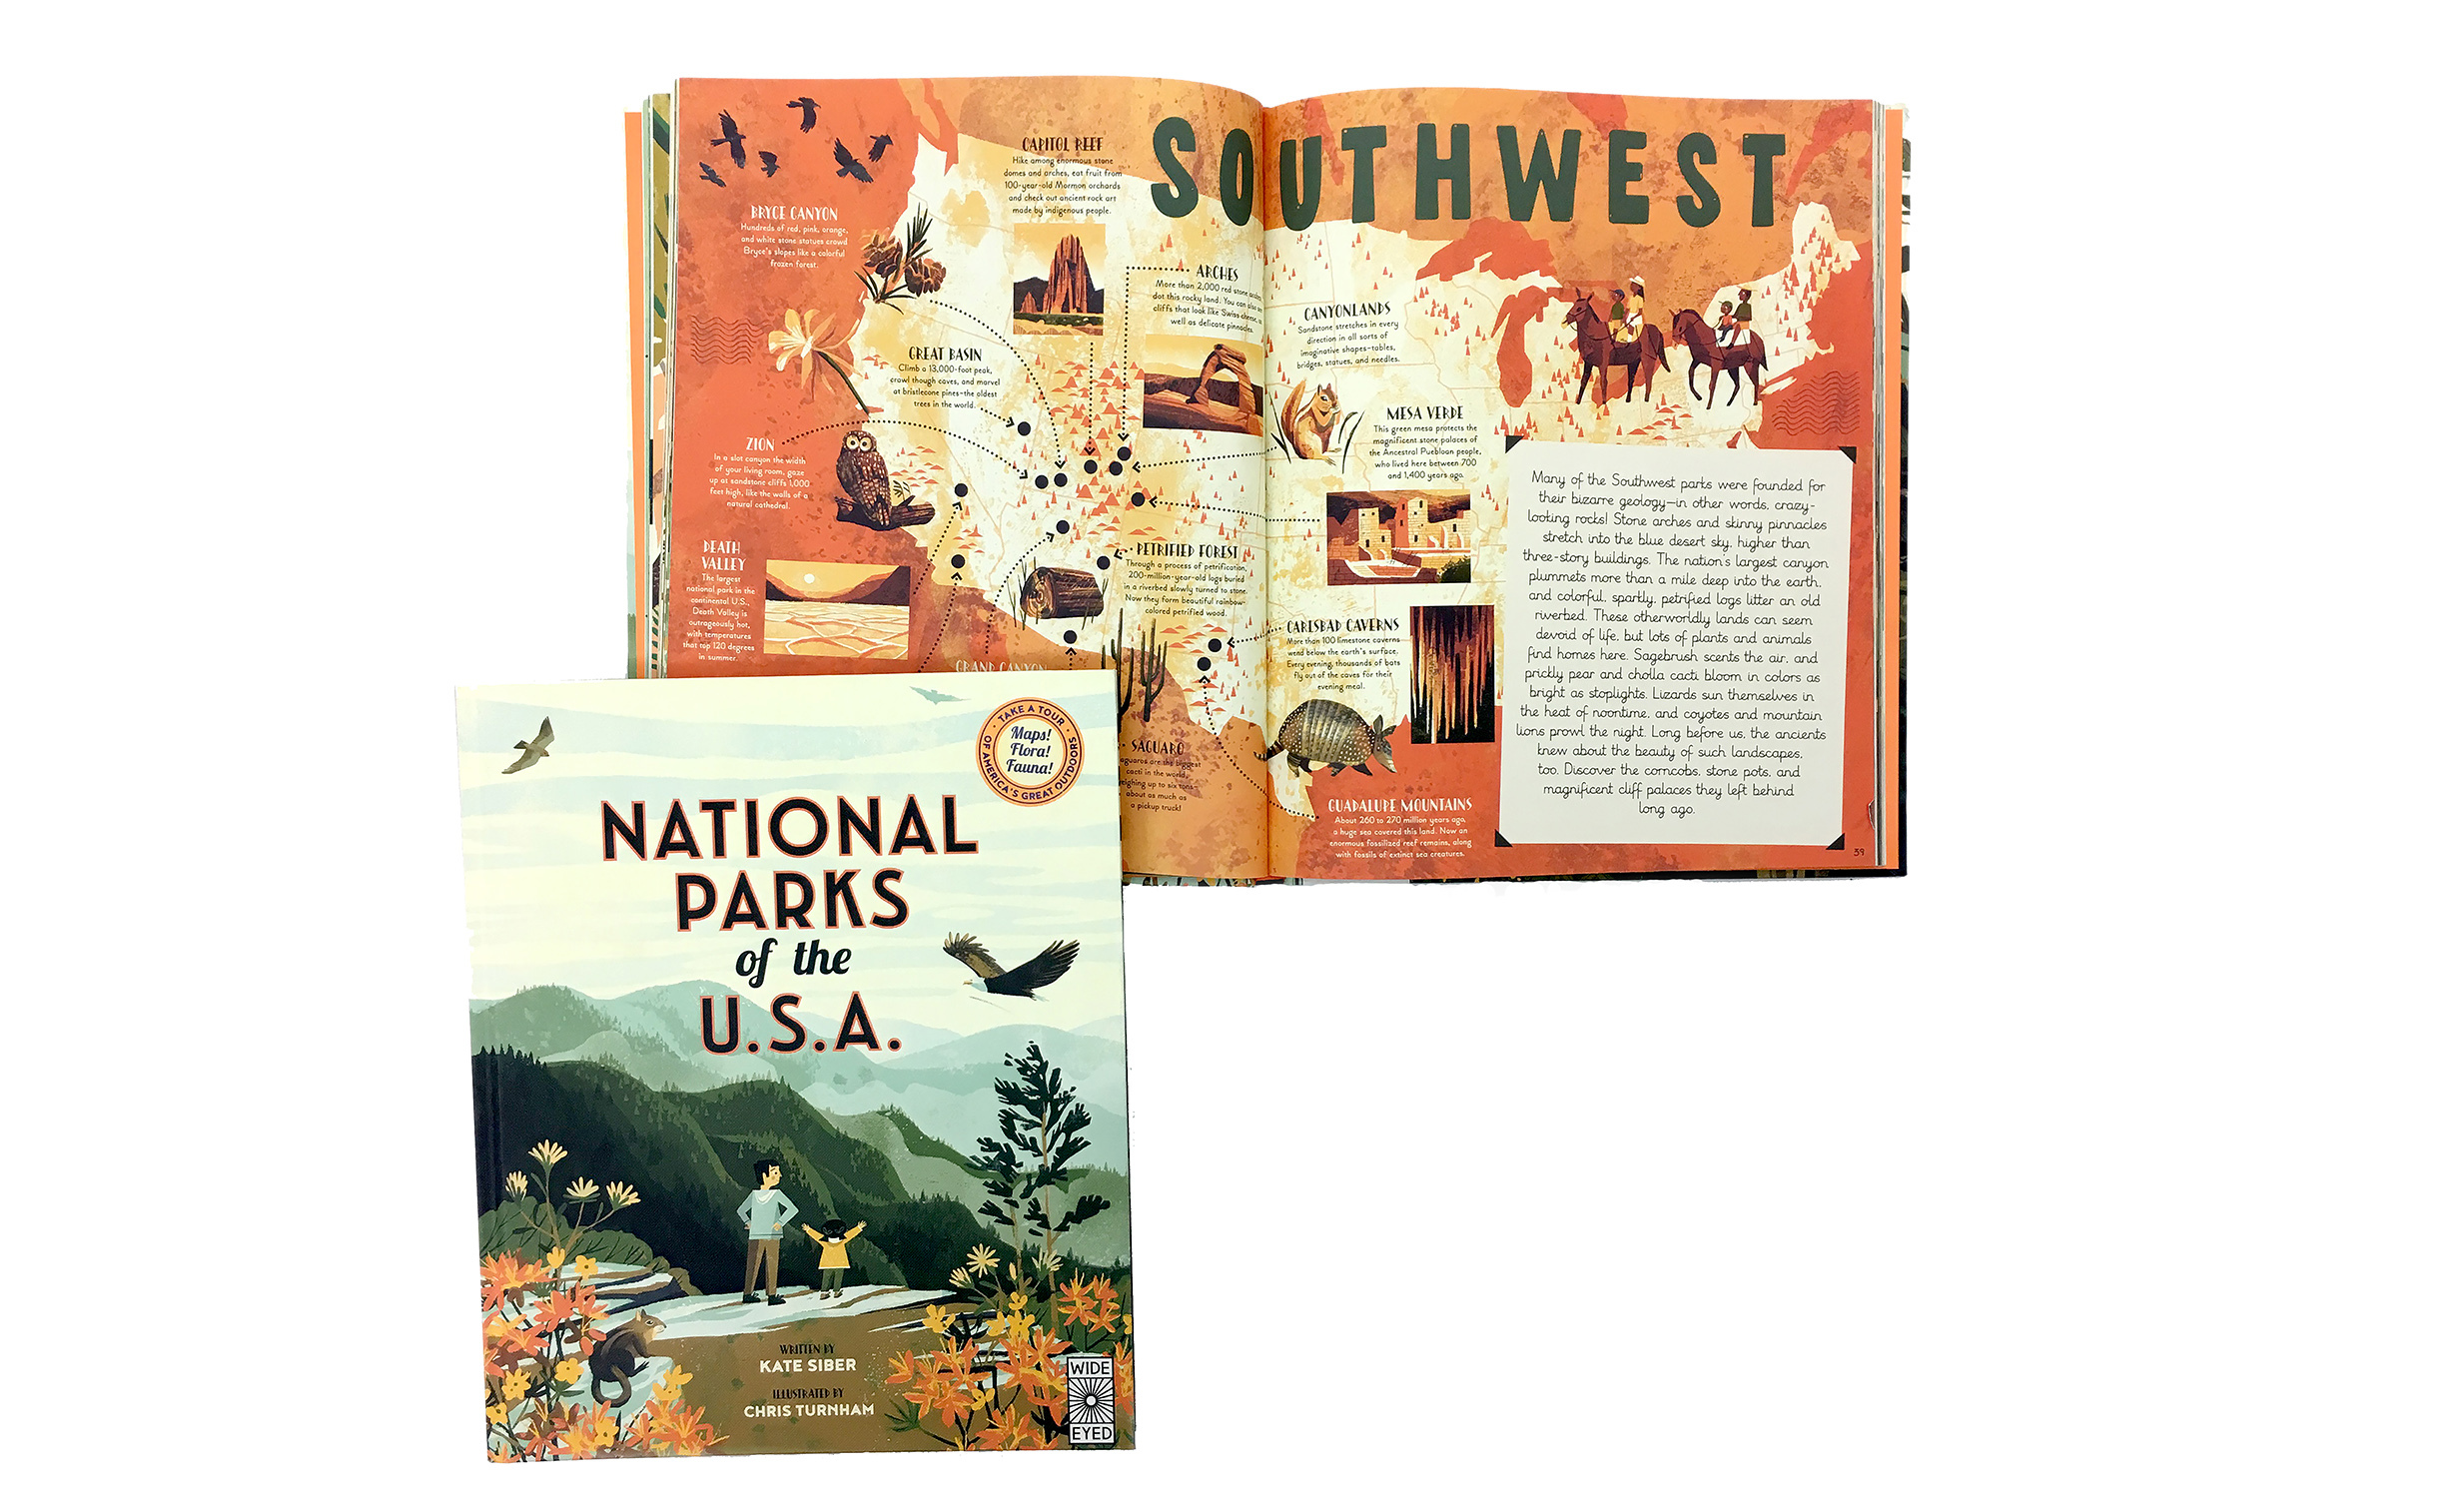 Nation-Parks-Book-illustrations.jpg?mtime=20181109103518#asset:103690